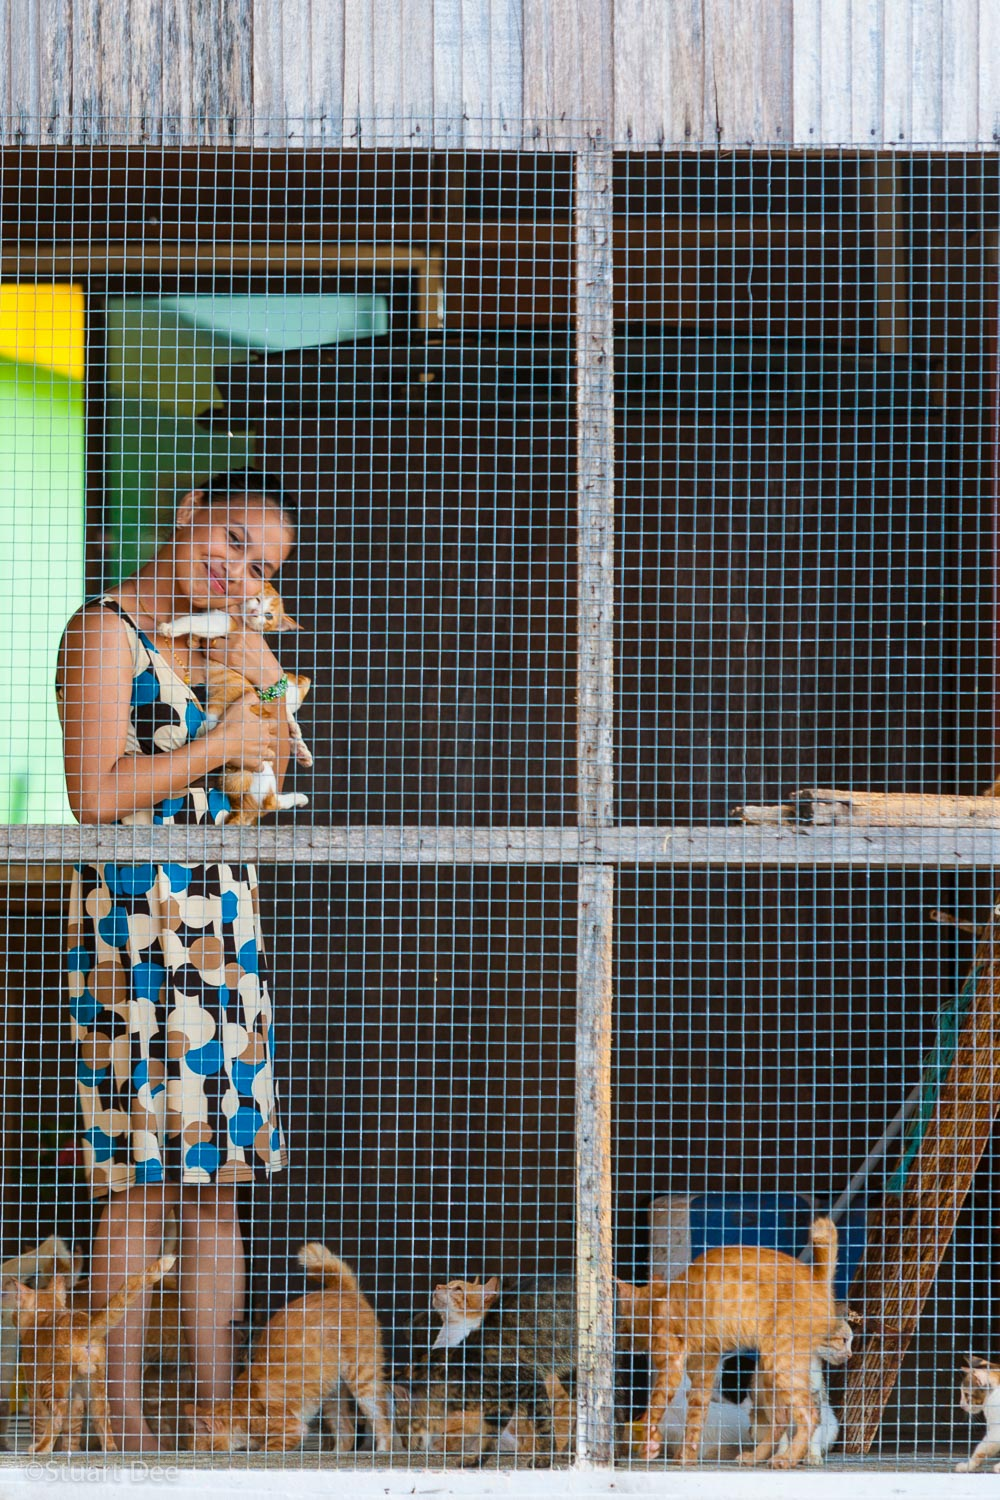 Woman with her pet cats, Buli Sim Sim water village, Sandakan, Sabah, Malaysia. Sandakan is the second largest city in Sabah (after KK) and is a gateway to many ecotourism destinations.